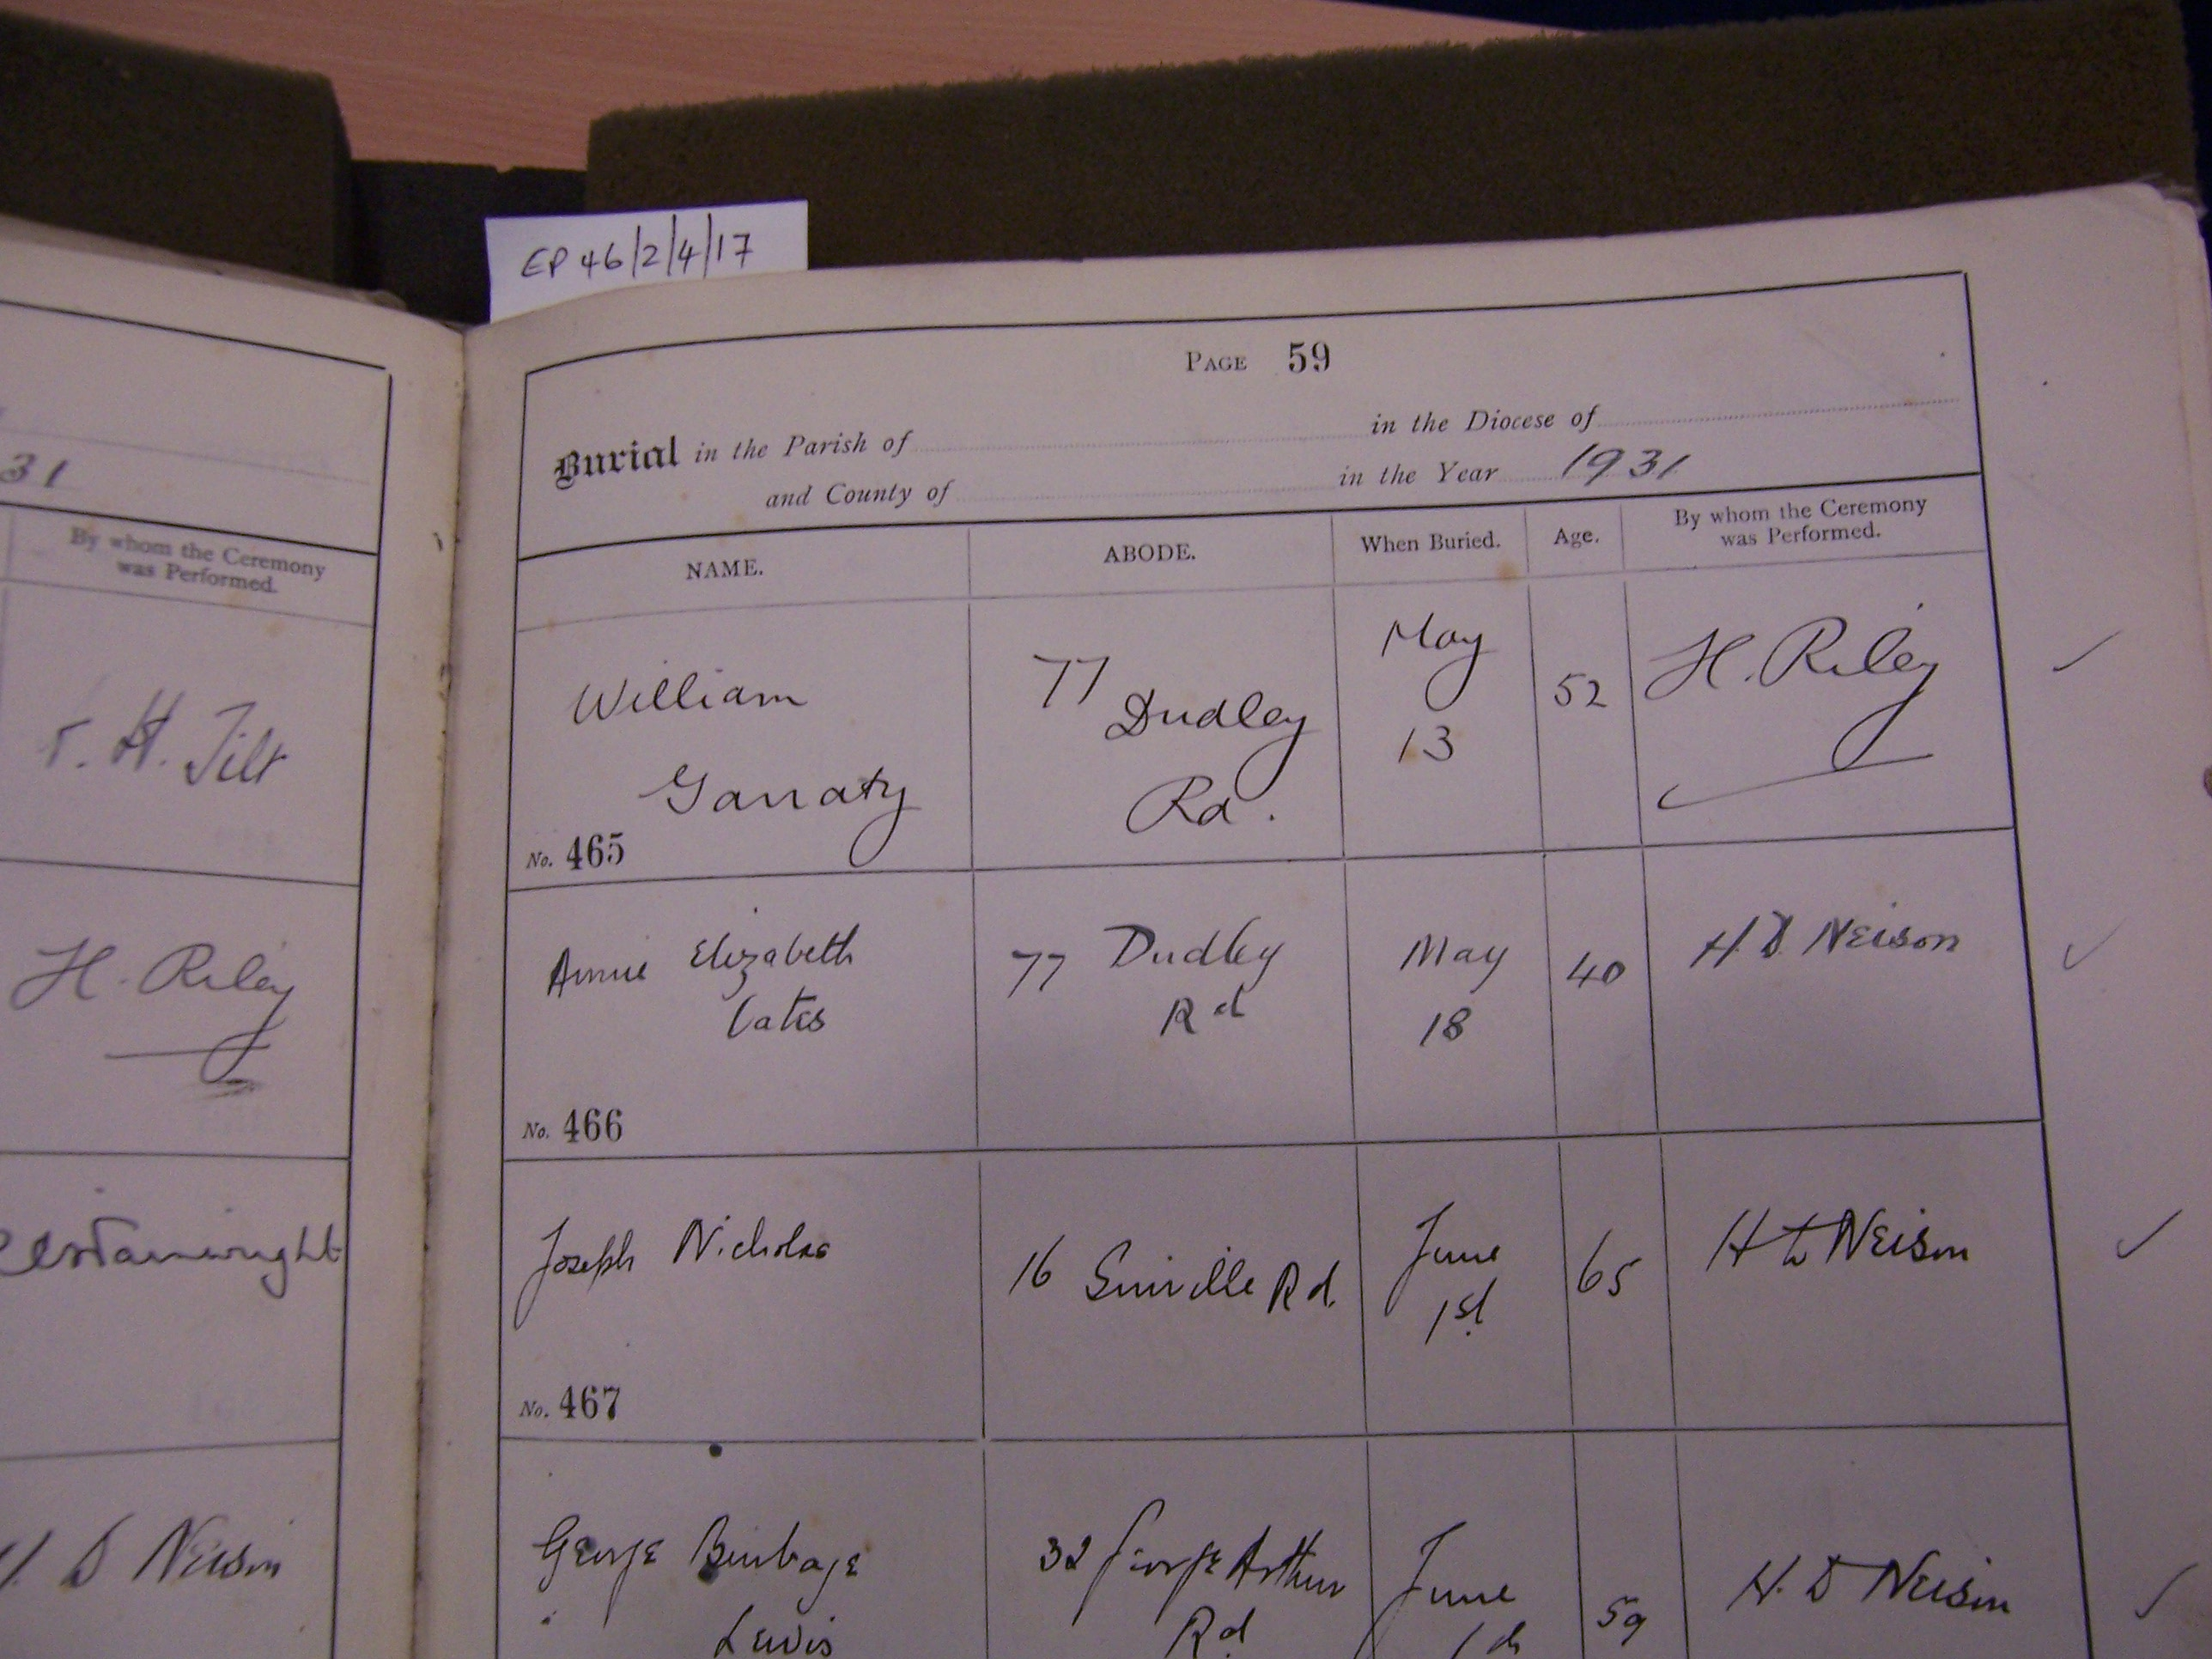 Billy Garraty's Death Register Birmingham Library